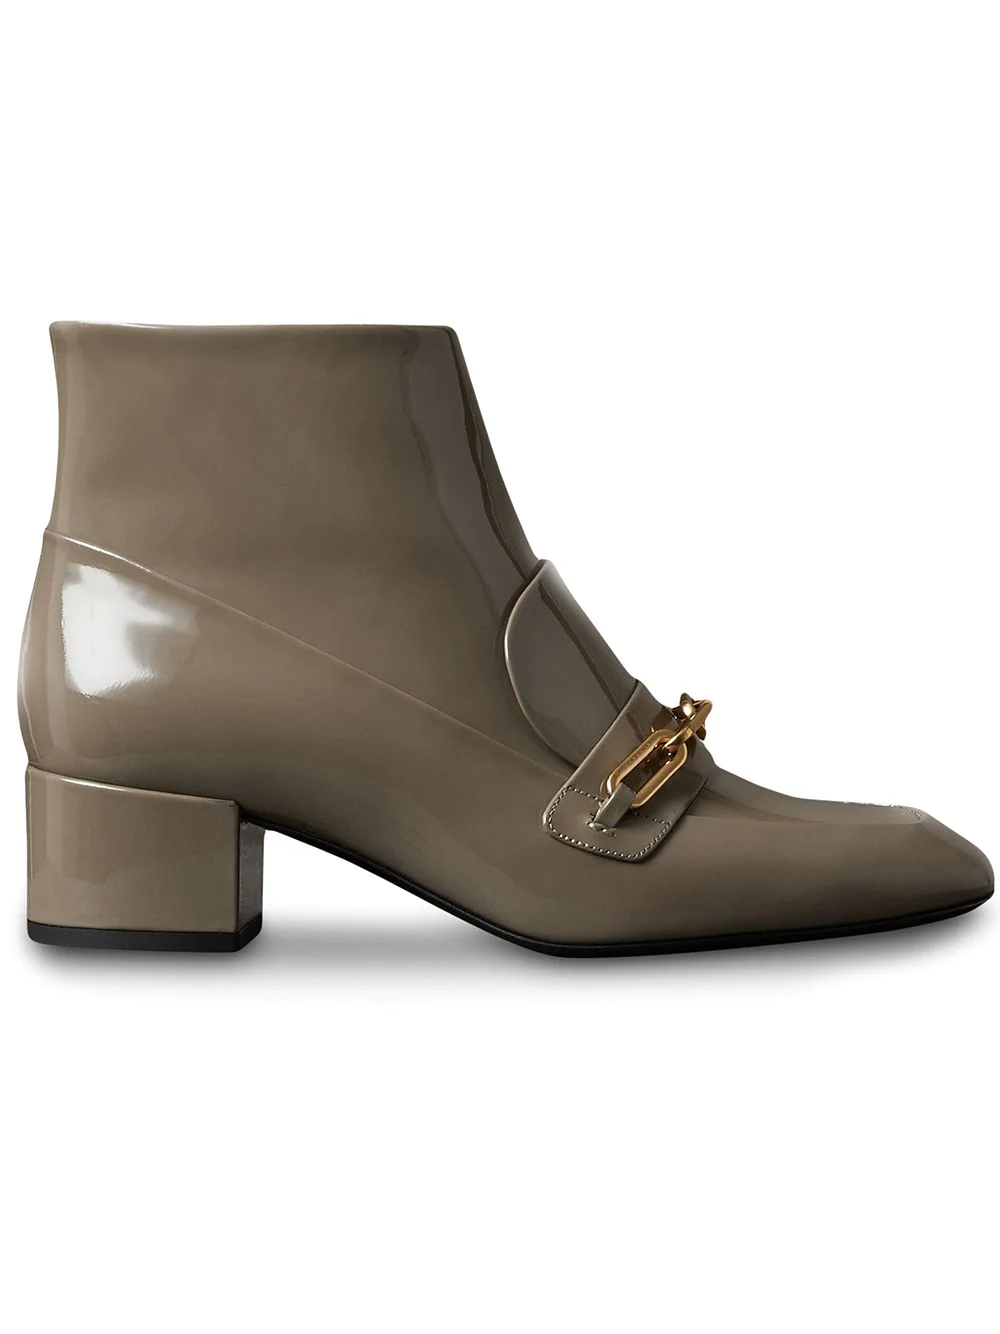 96143d48c89 Burberry Link Detail Patent Leather Ankle Boots - Grey | ModeSens